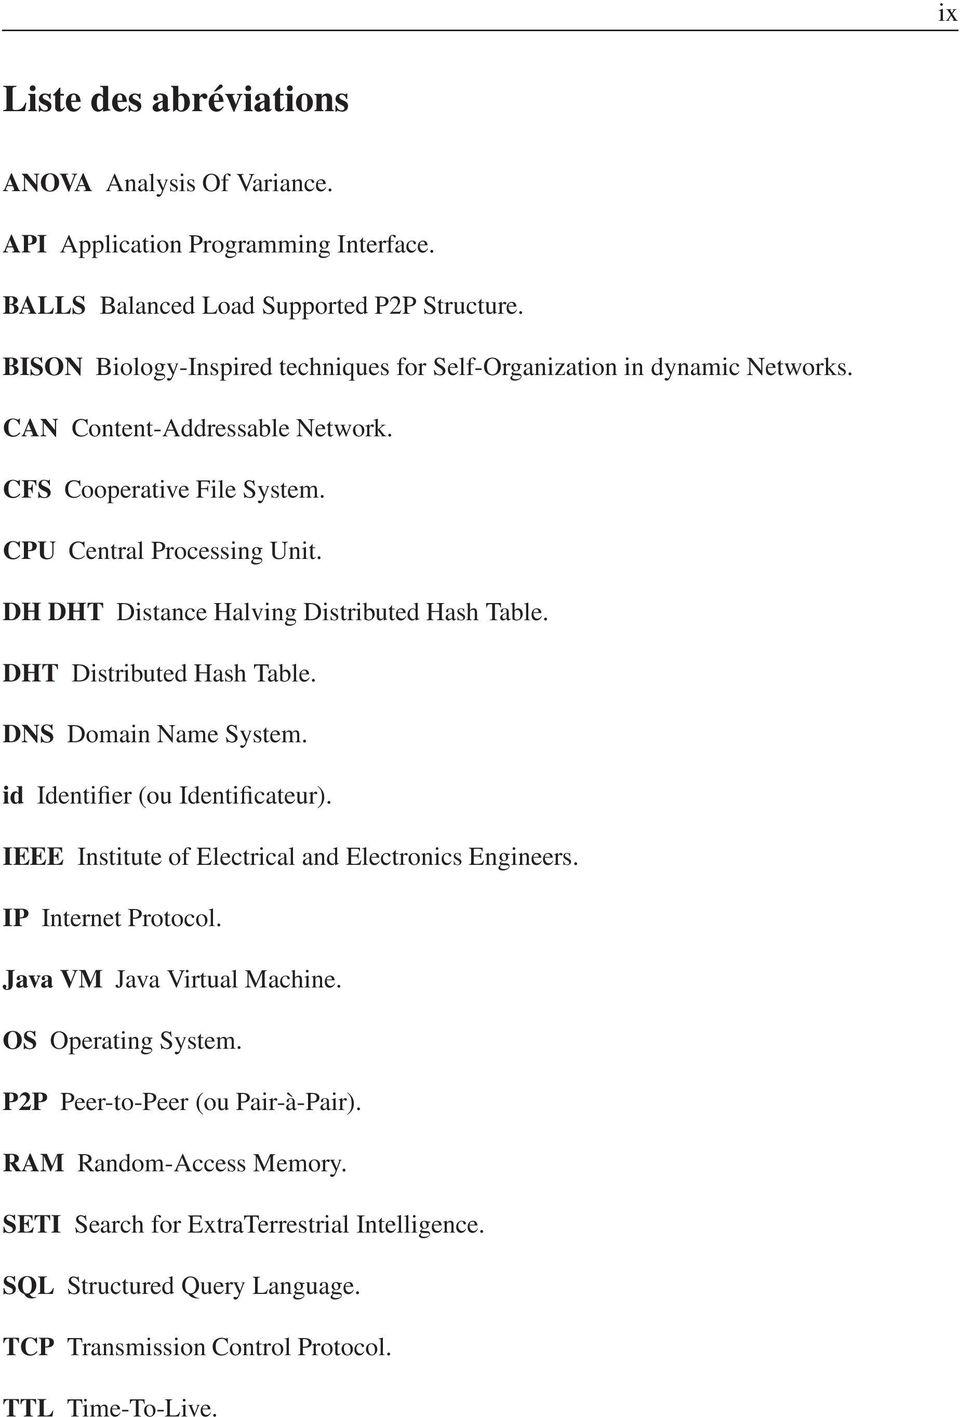 DH DHT Distance Halving Distributed Hash Table. DHT Distributed Hash Table. DNS Domain Name System. id Identifier (ou Identificateur). IEEE Institute of Electrical and Electronics Engineers.